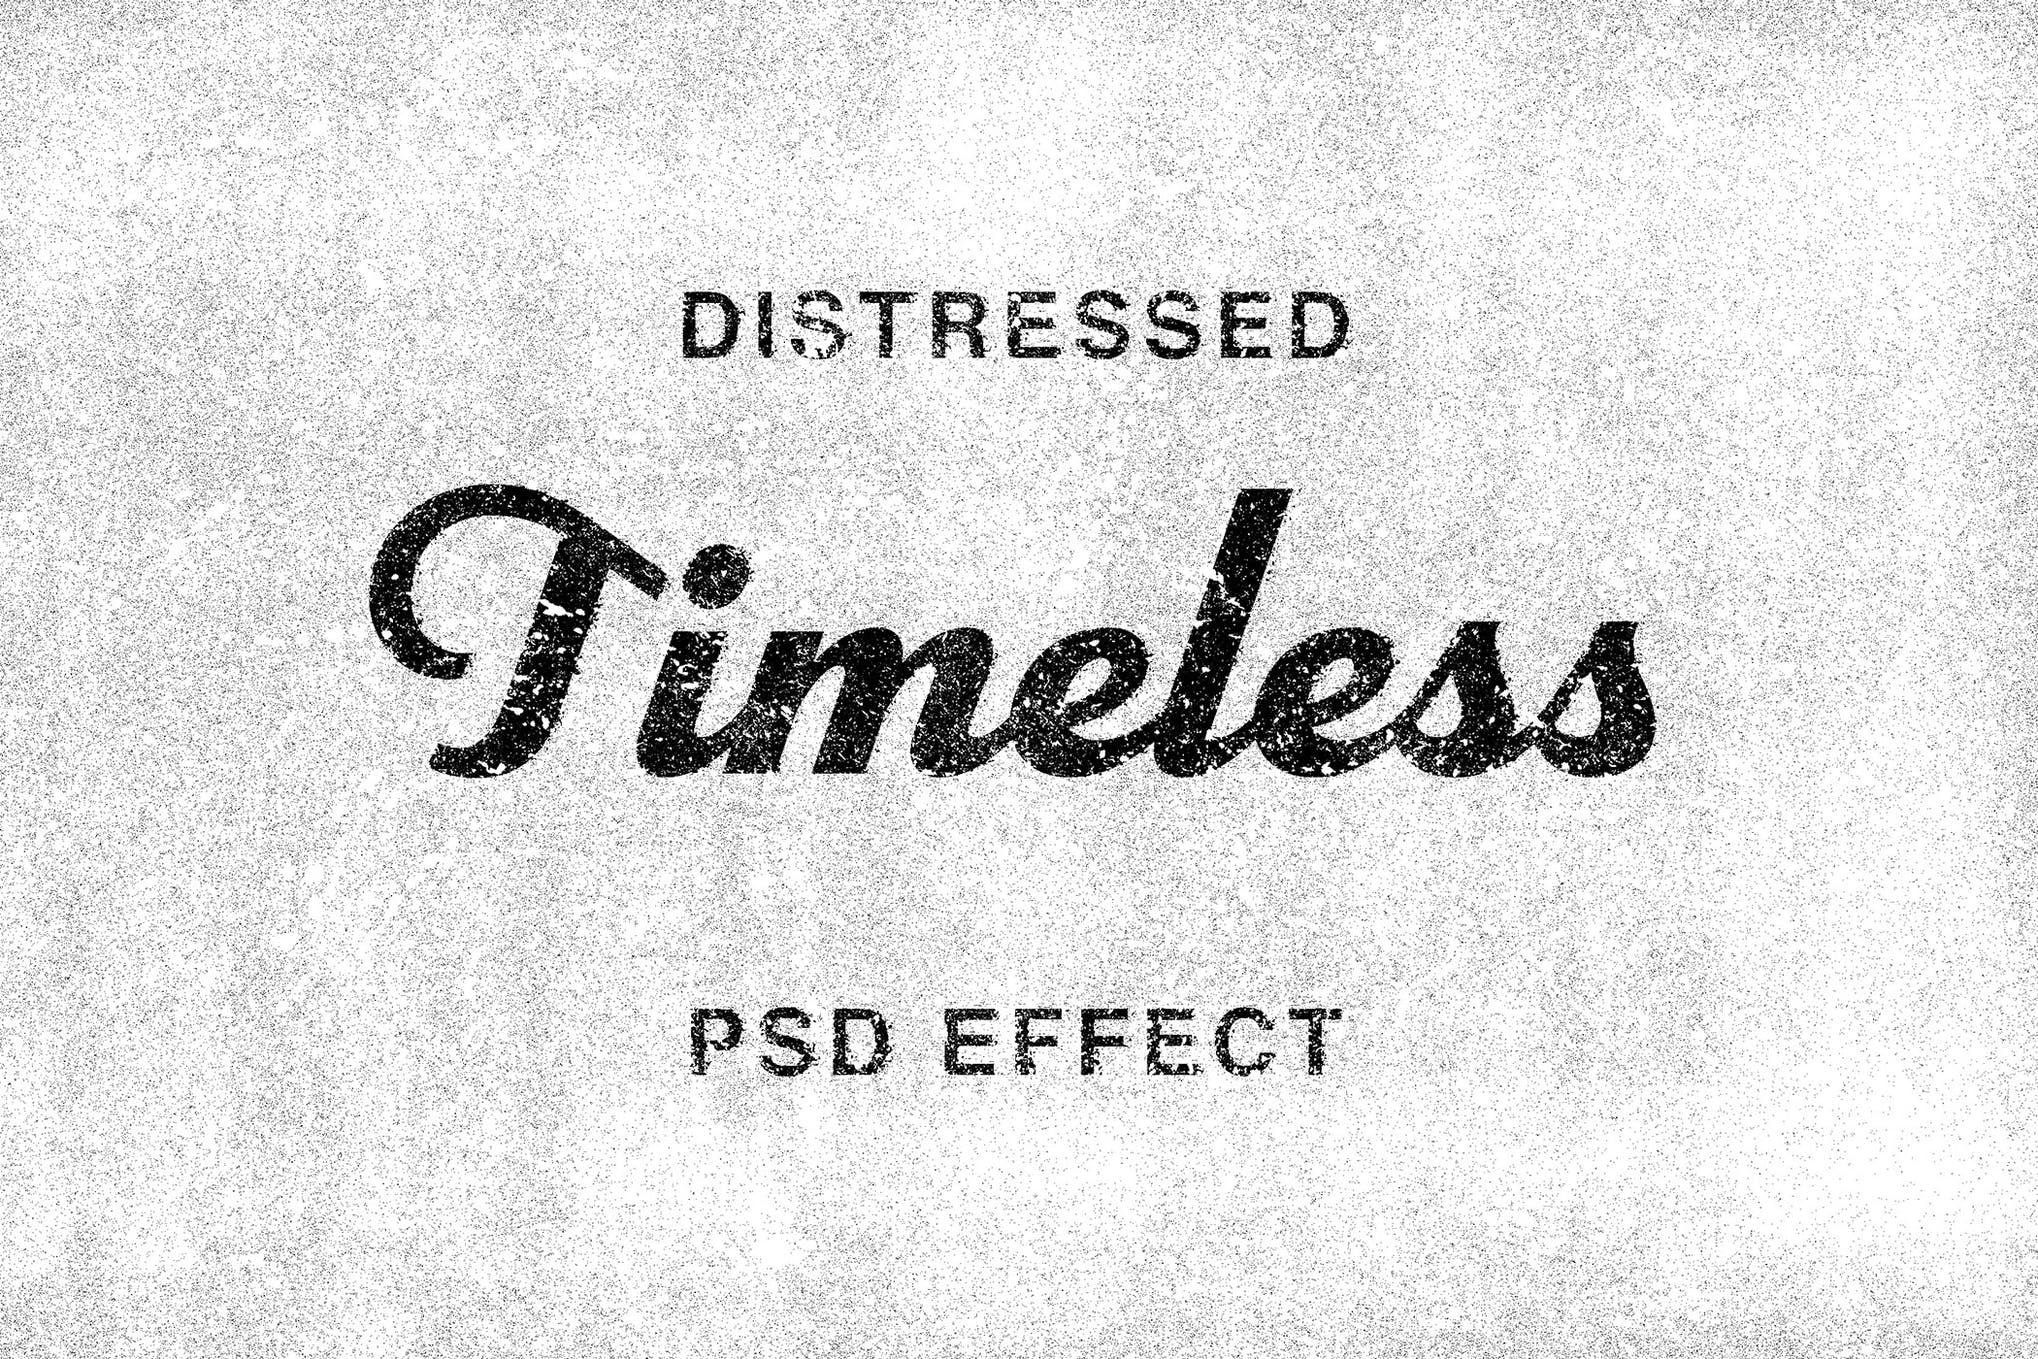 photoshop distressed effect